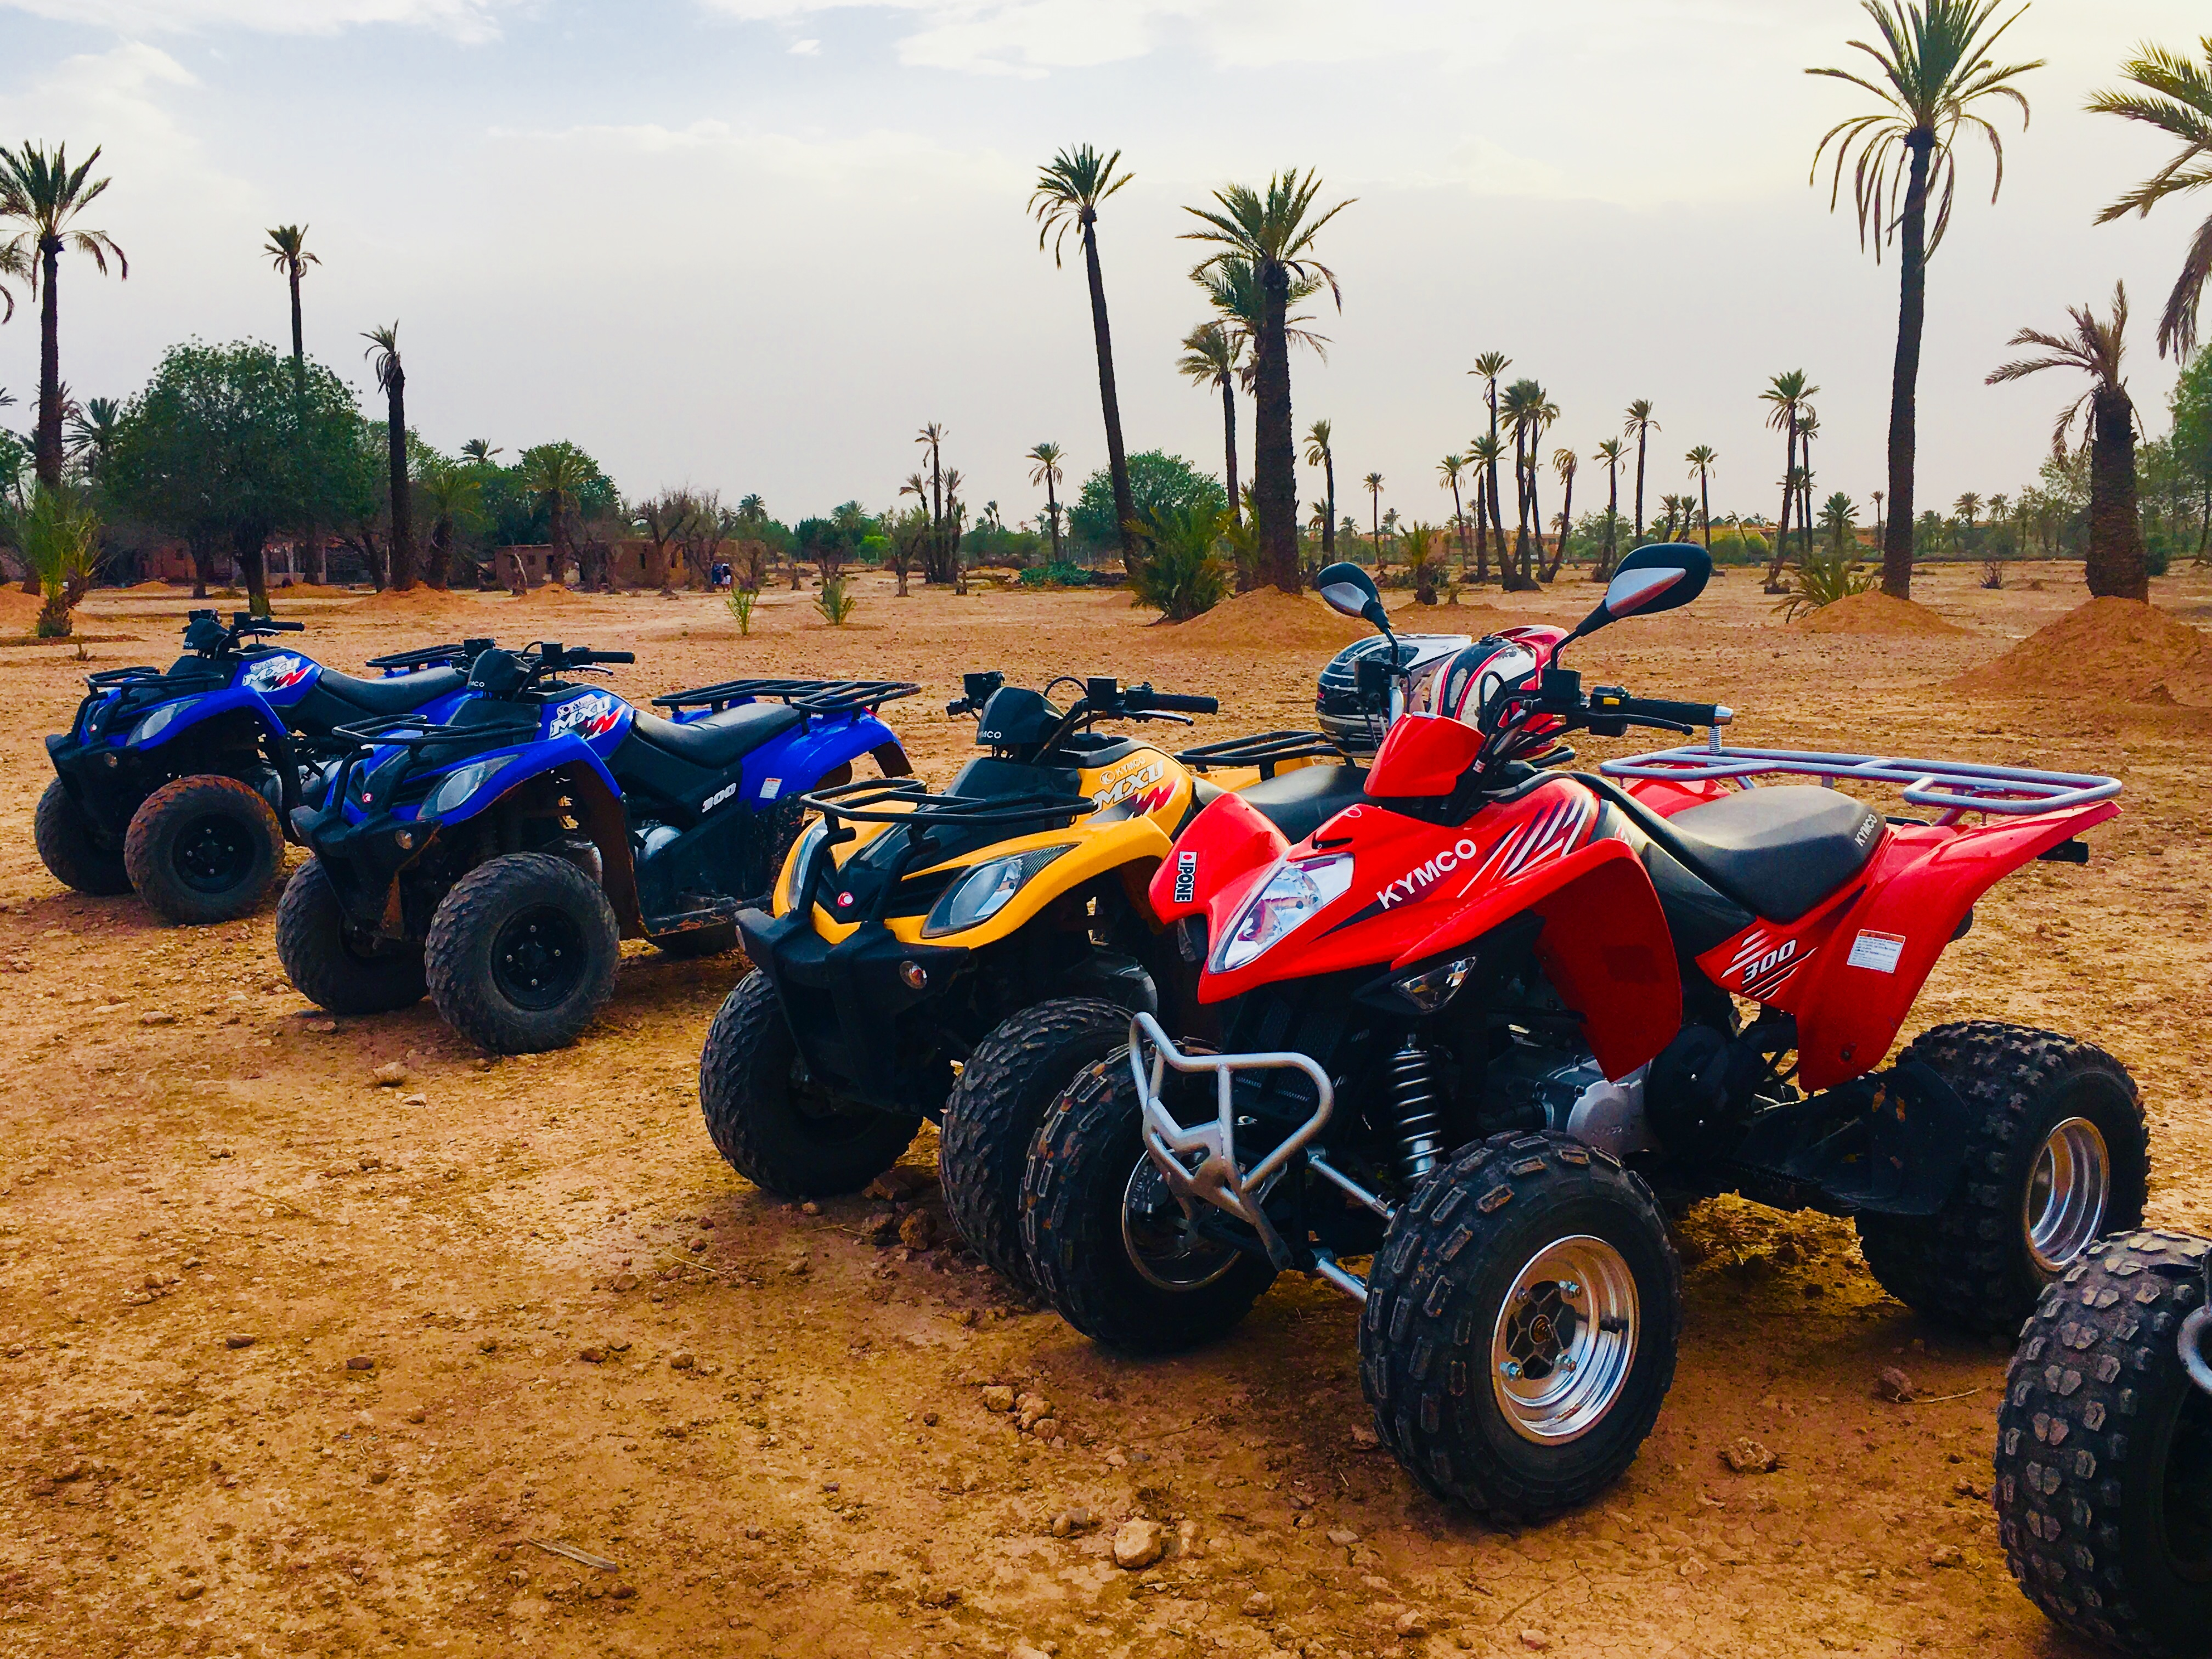 Quad Biking Safari In the palm grove of Marrakech